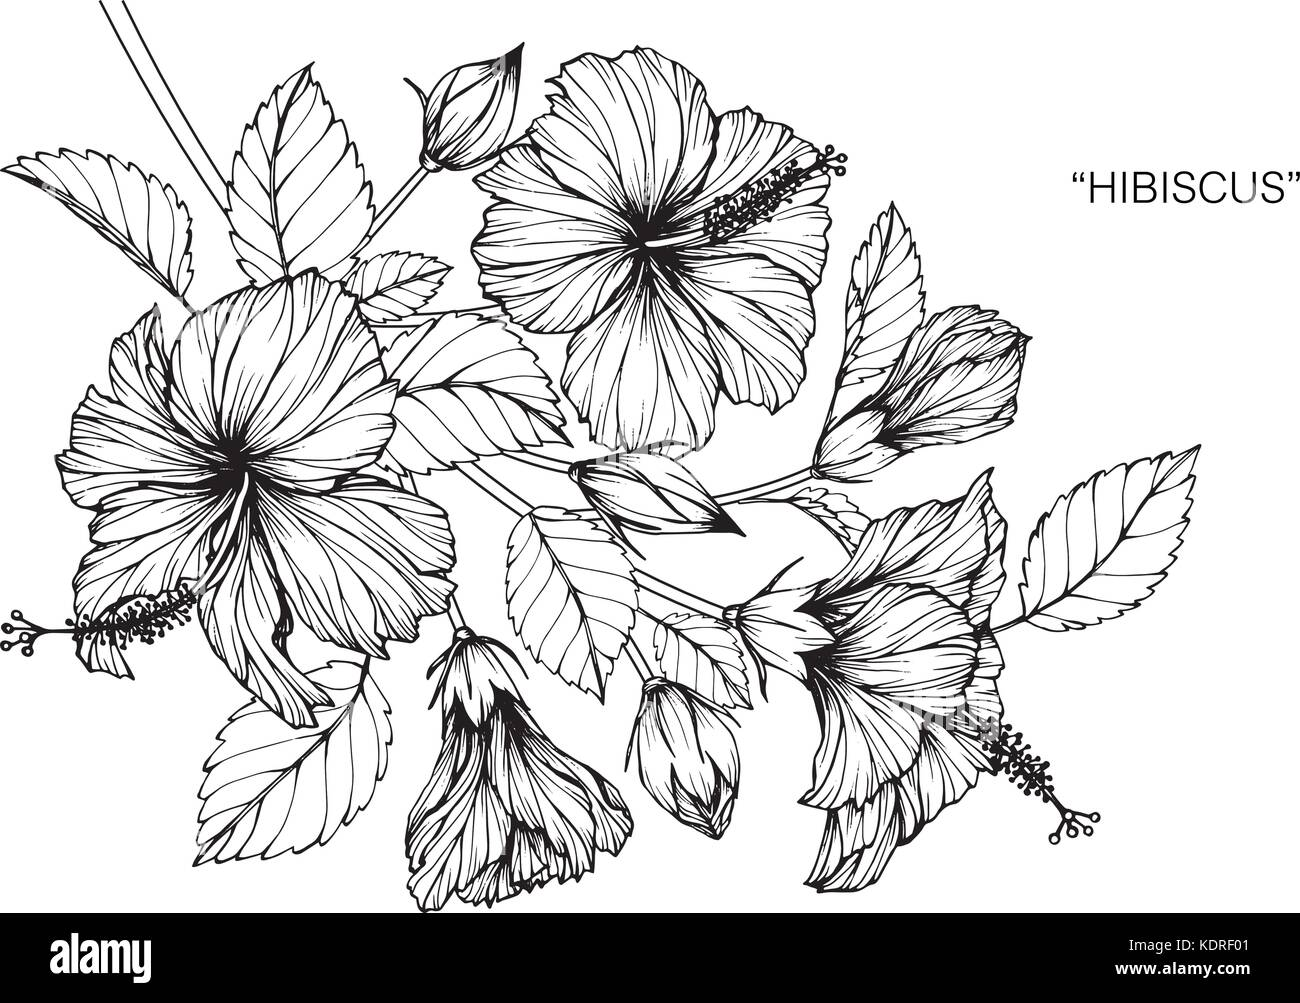 Hibiscus flower drawing illustration black and white with line art hibiscus flower drawing illustration black and white with line art izmirmasajfo